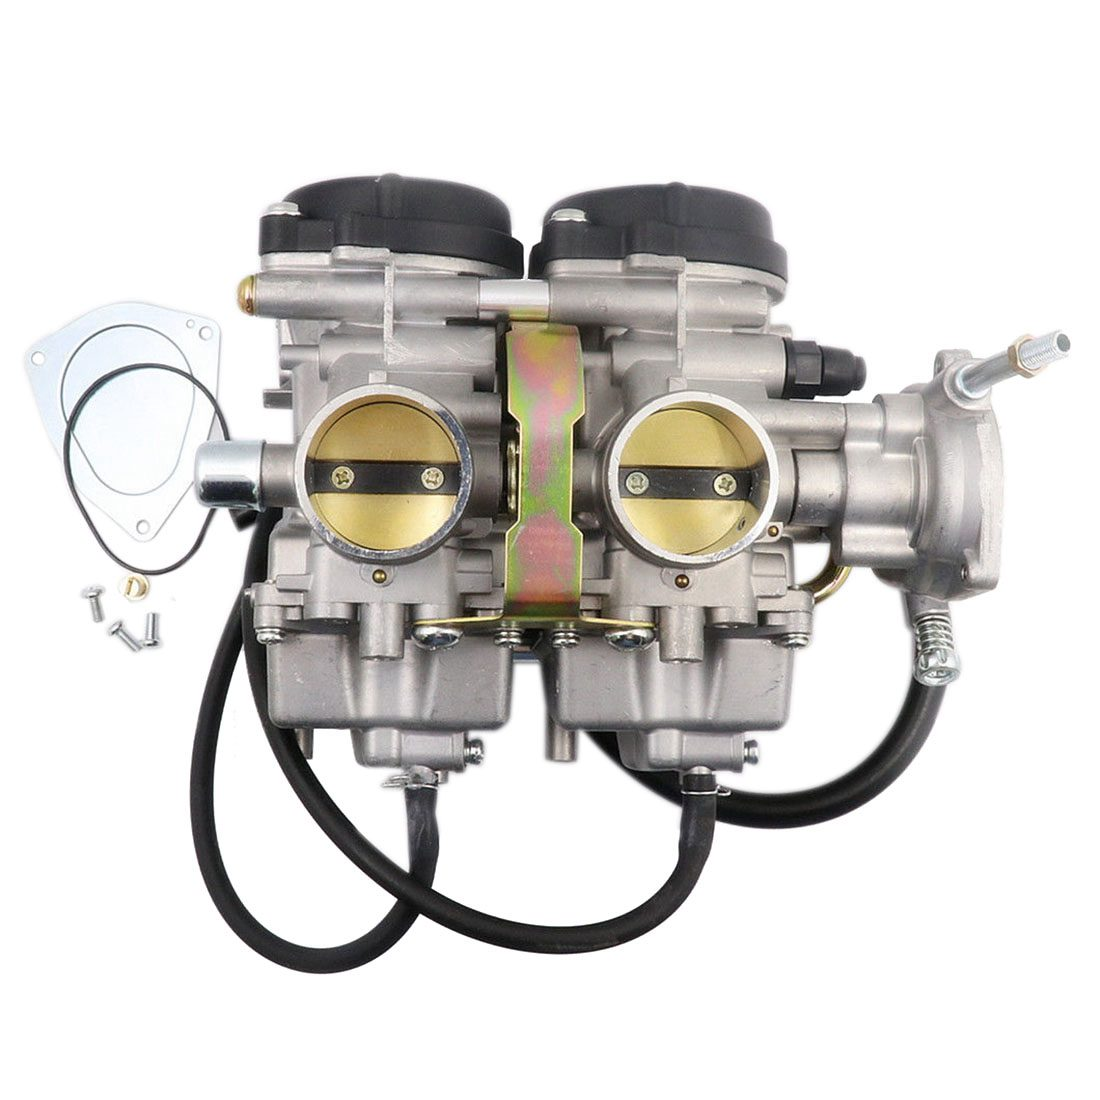 AUTO -New Carburetor for YAMAHA RAPTOR 660 YFM660 2001-2005 Carb wheel bearing for yamaha grizzly 660 700 550 atv yfm660 93305 00602 00 4 pcs